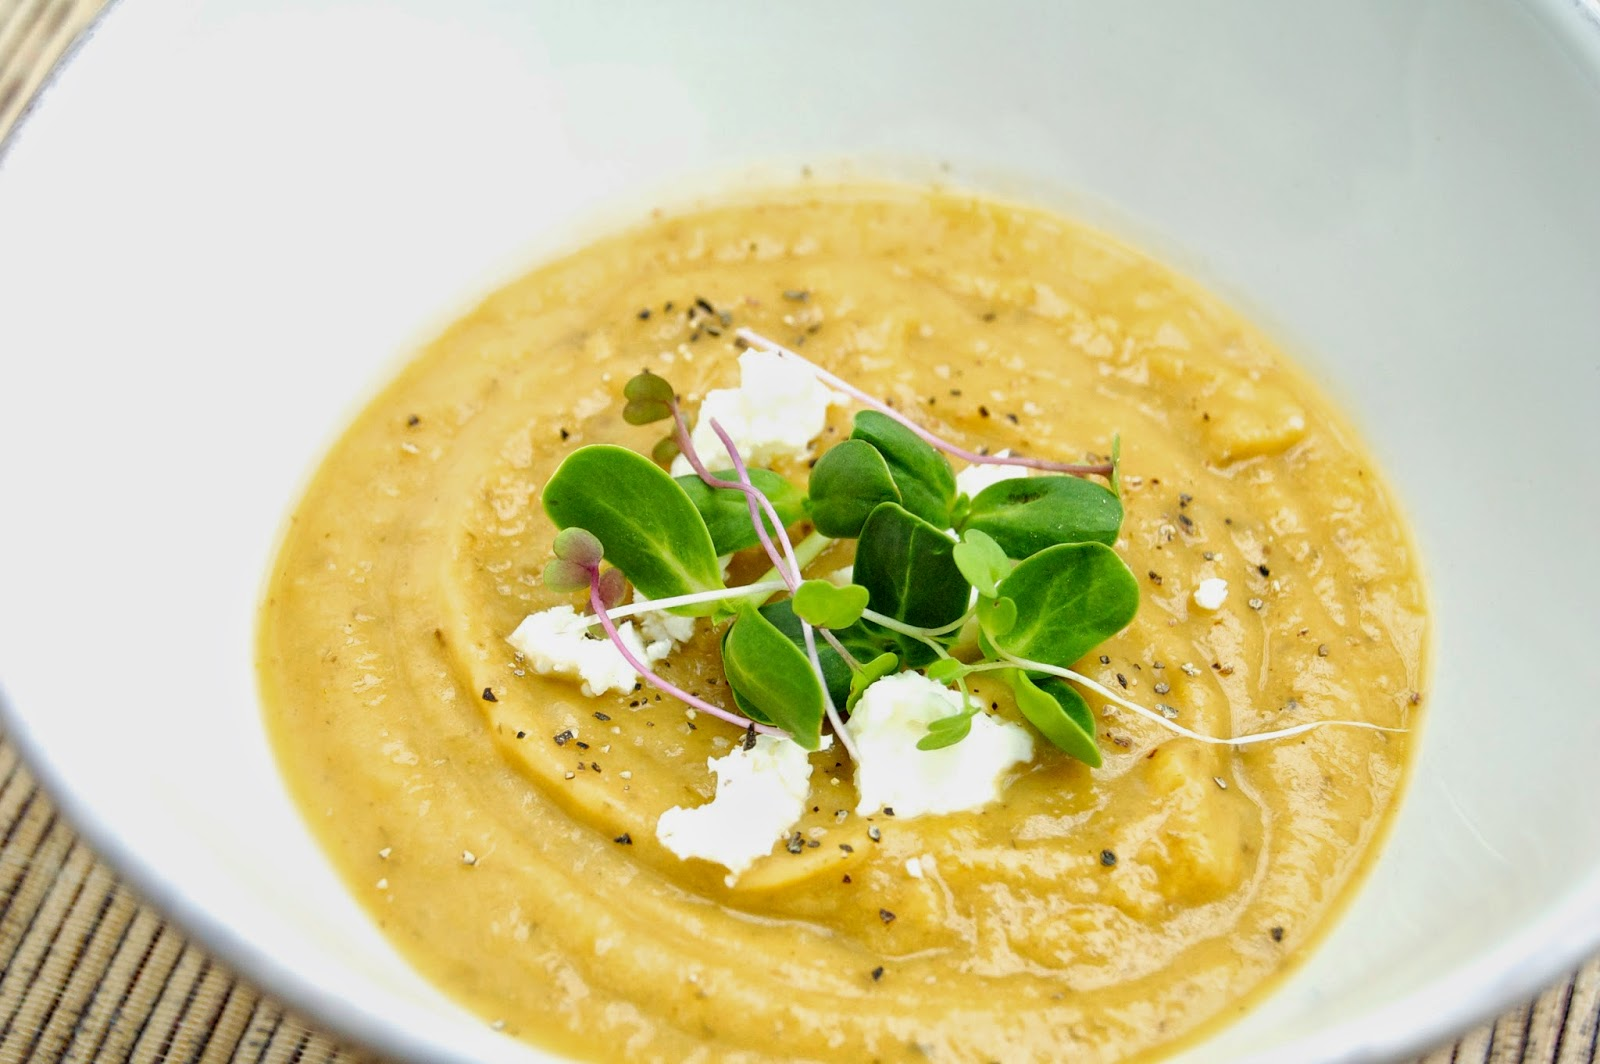 Roasted Sunchoke and Shallot Soup | www.kettlercuisine.com